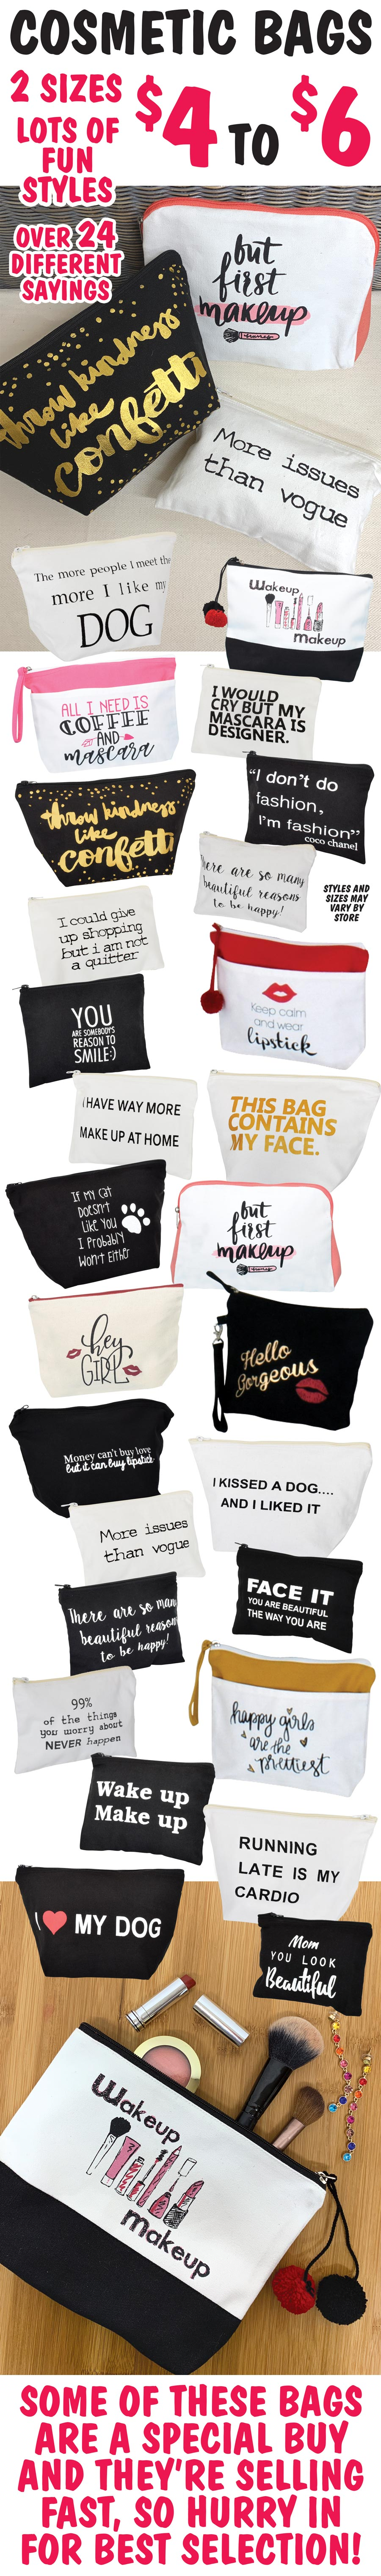 Cosmetic Bags with fun sayings $4 to $6, 2 sizes, over 24 different sayings. Some of these bags are a special buy and they're selling fast, so hurry in for best selection!